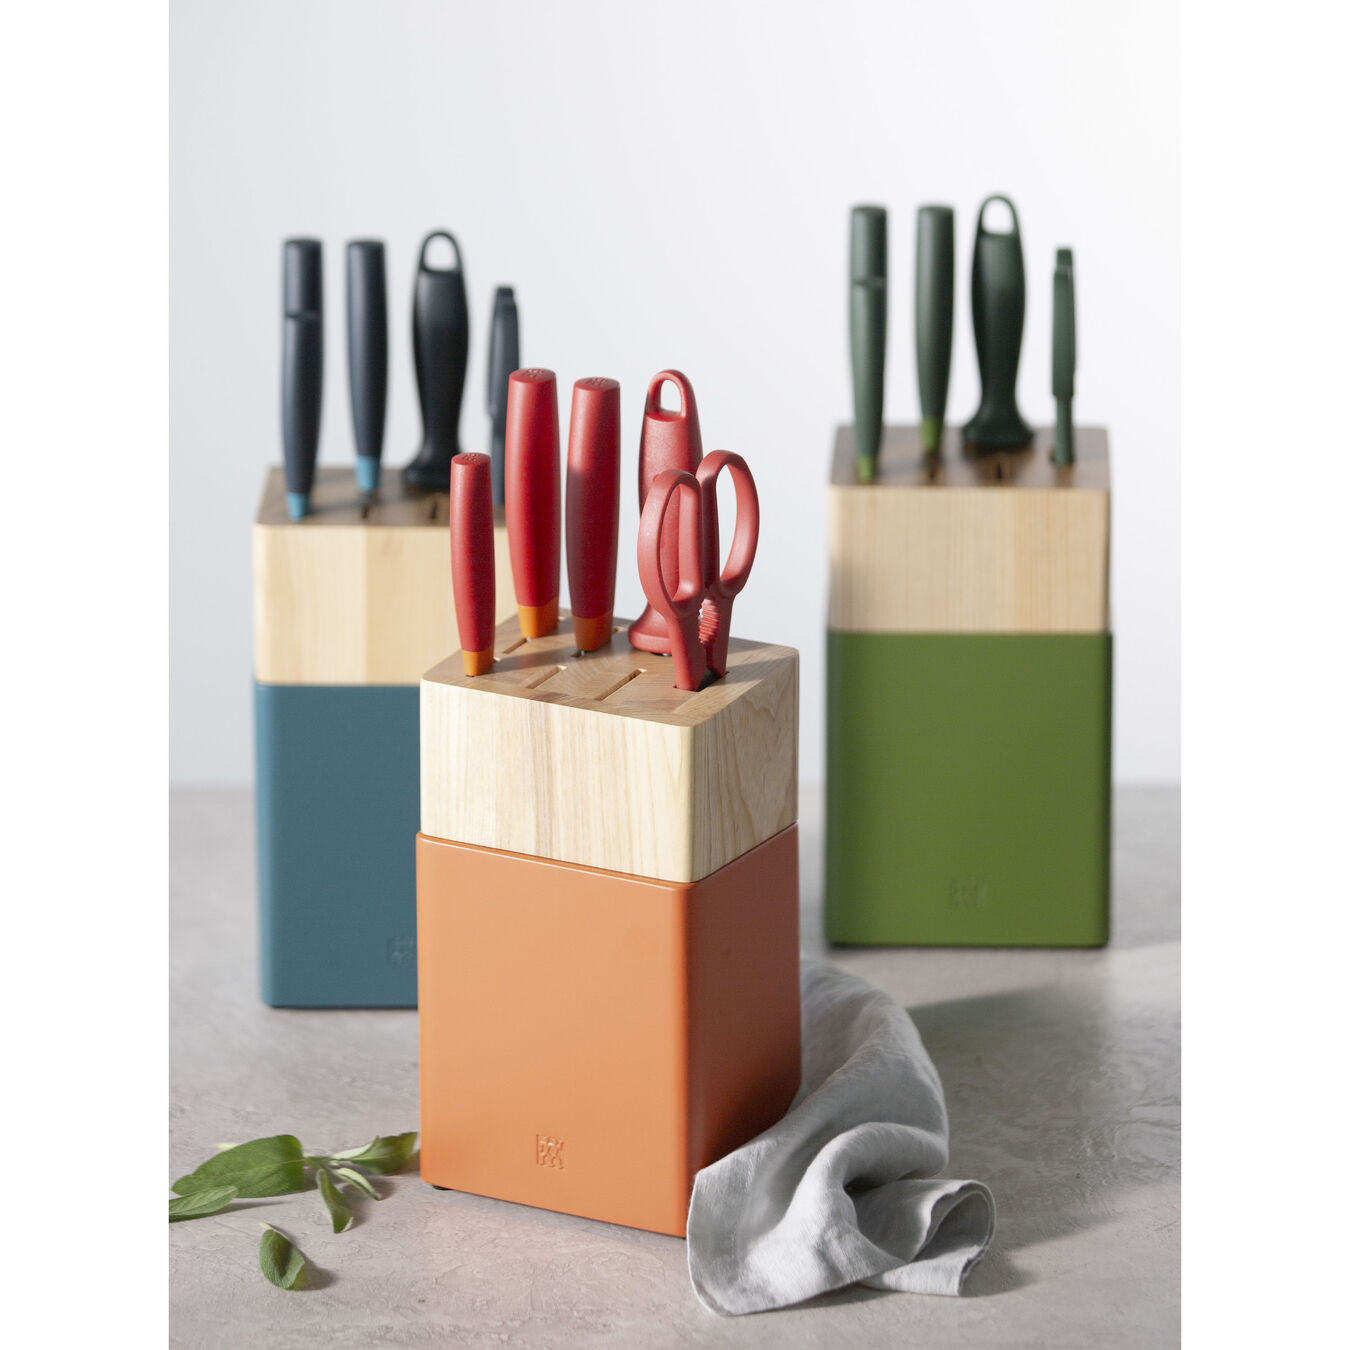 8-pc, Knife block set, orange,,large 5